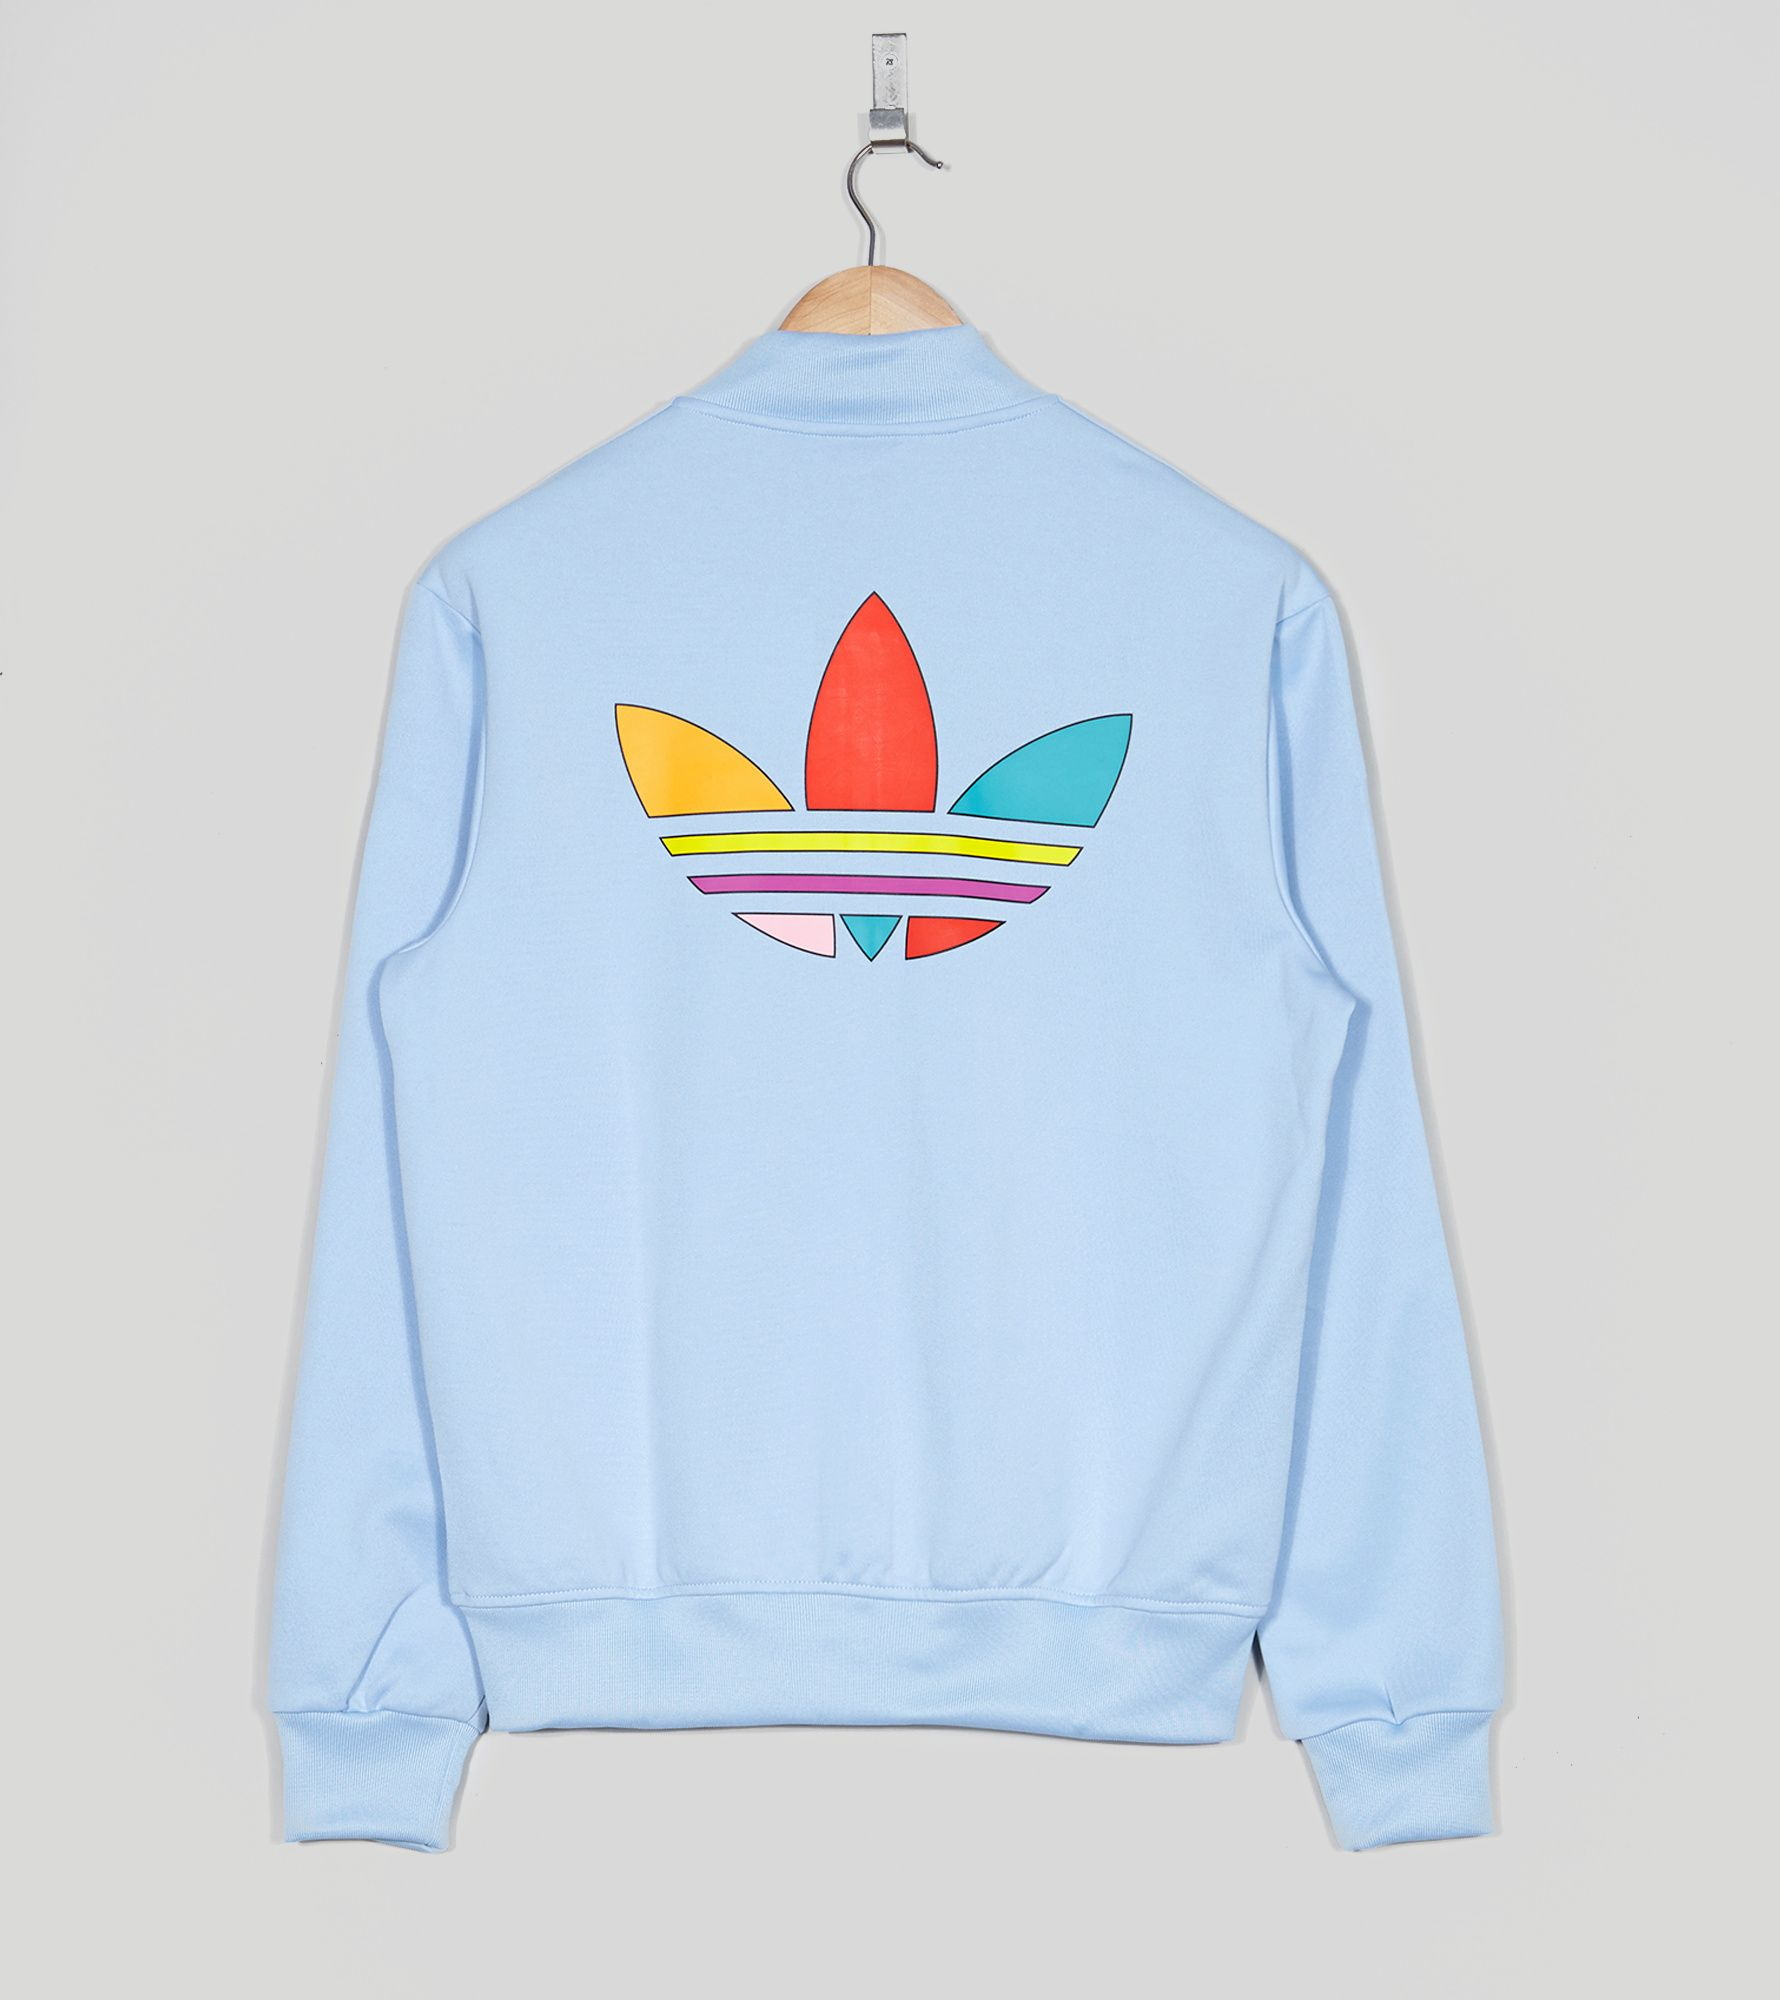 Pharrell Williams Corse Adidas Originali X - Supercolor